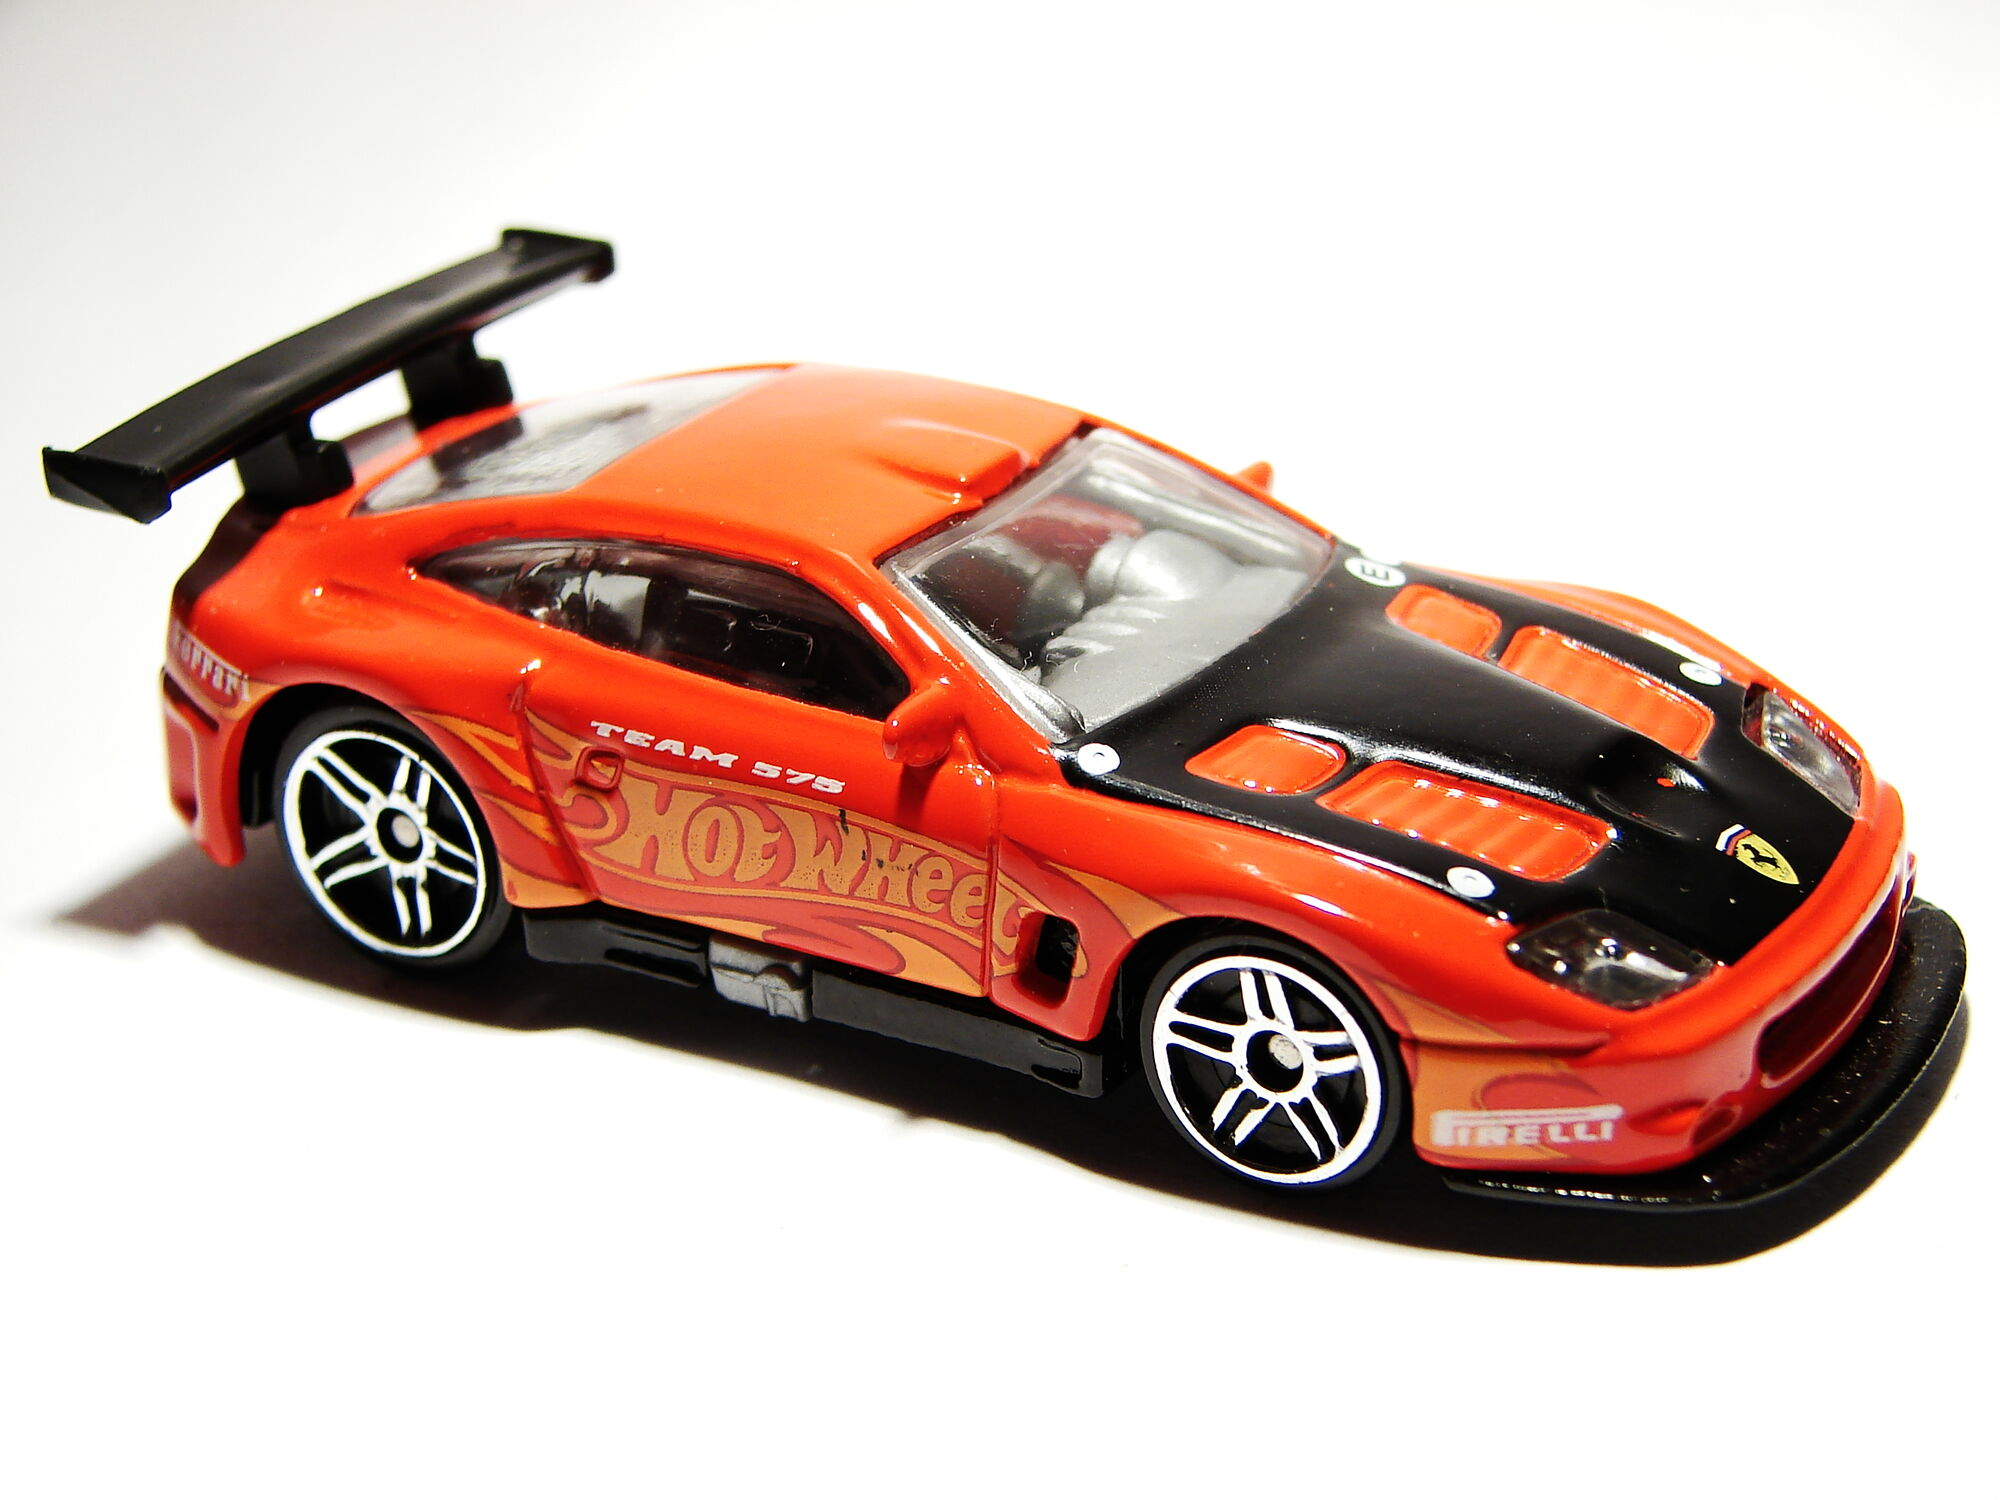 ferrari 575 gtc hot wheels wiki fandom powered by wikia. Black Bedroom Furniture Sets. Home Design Ideas